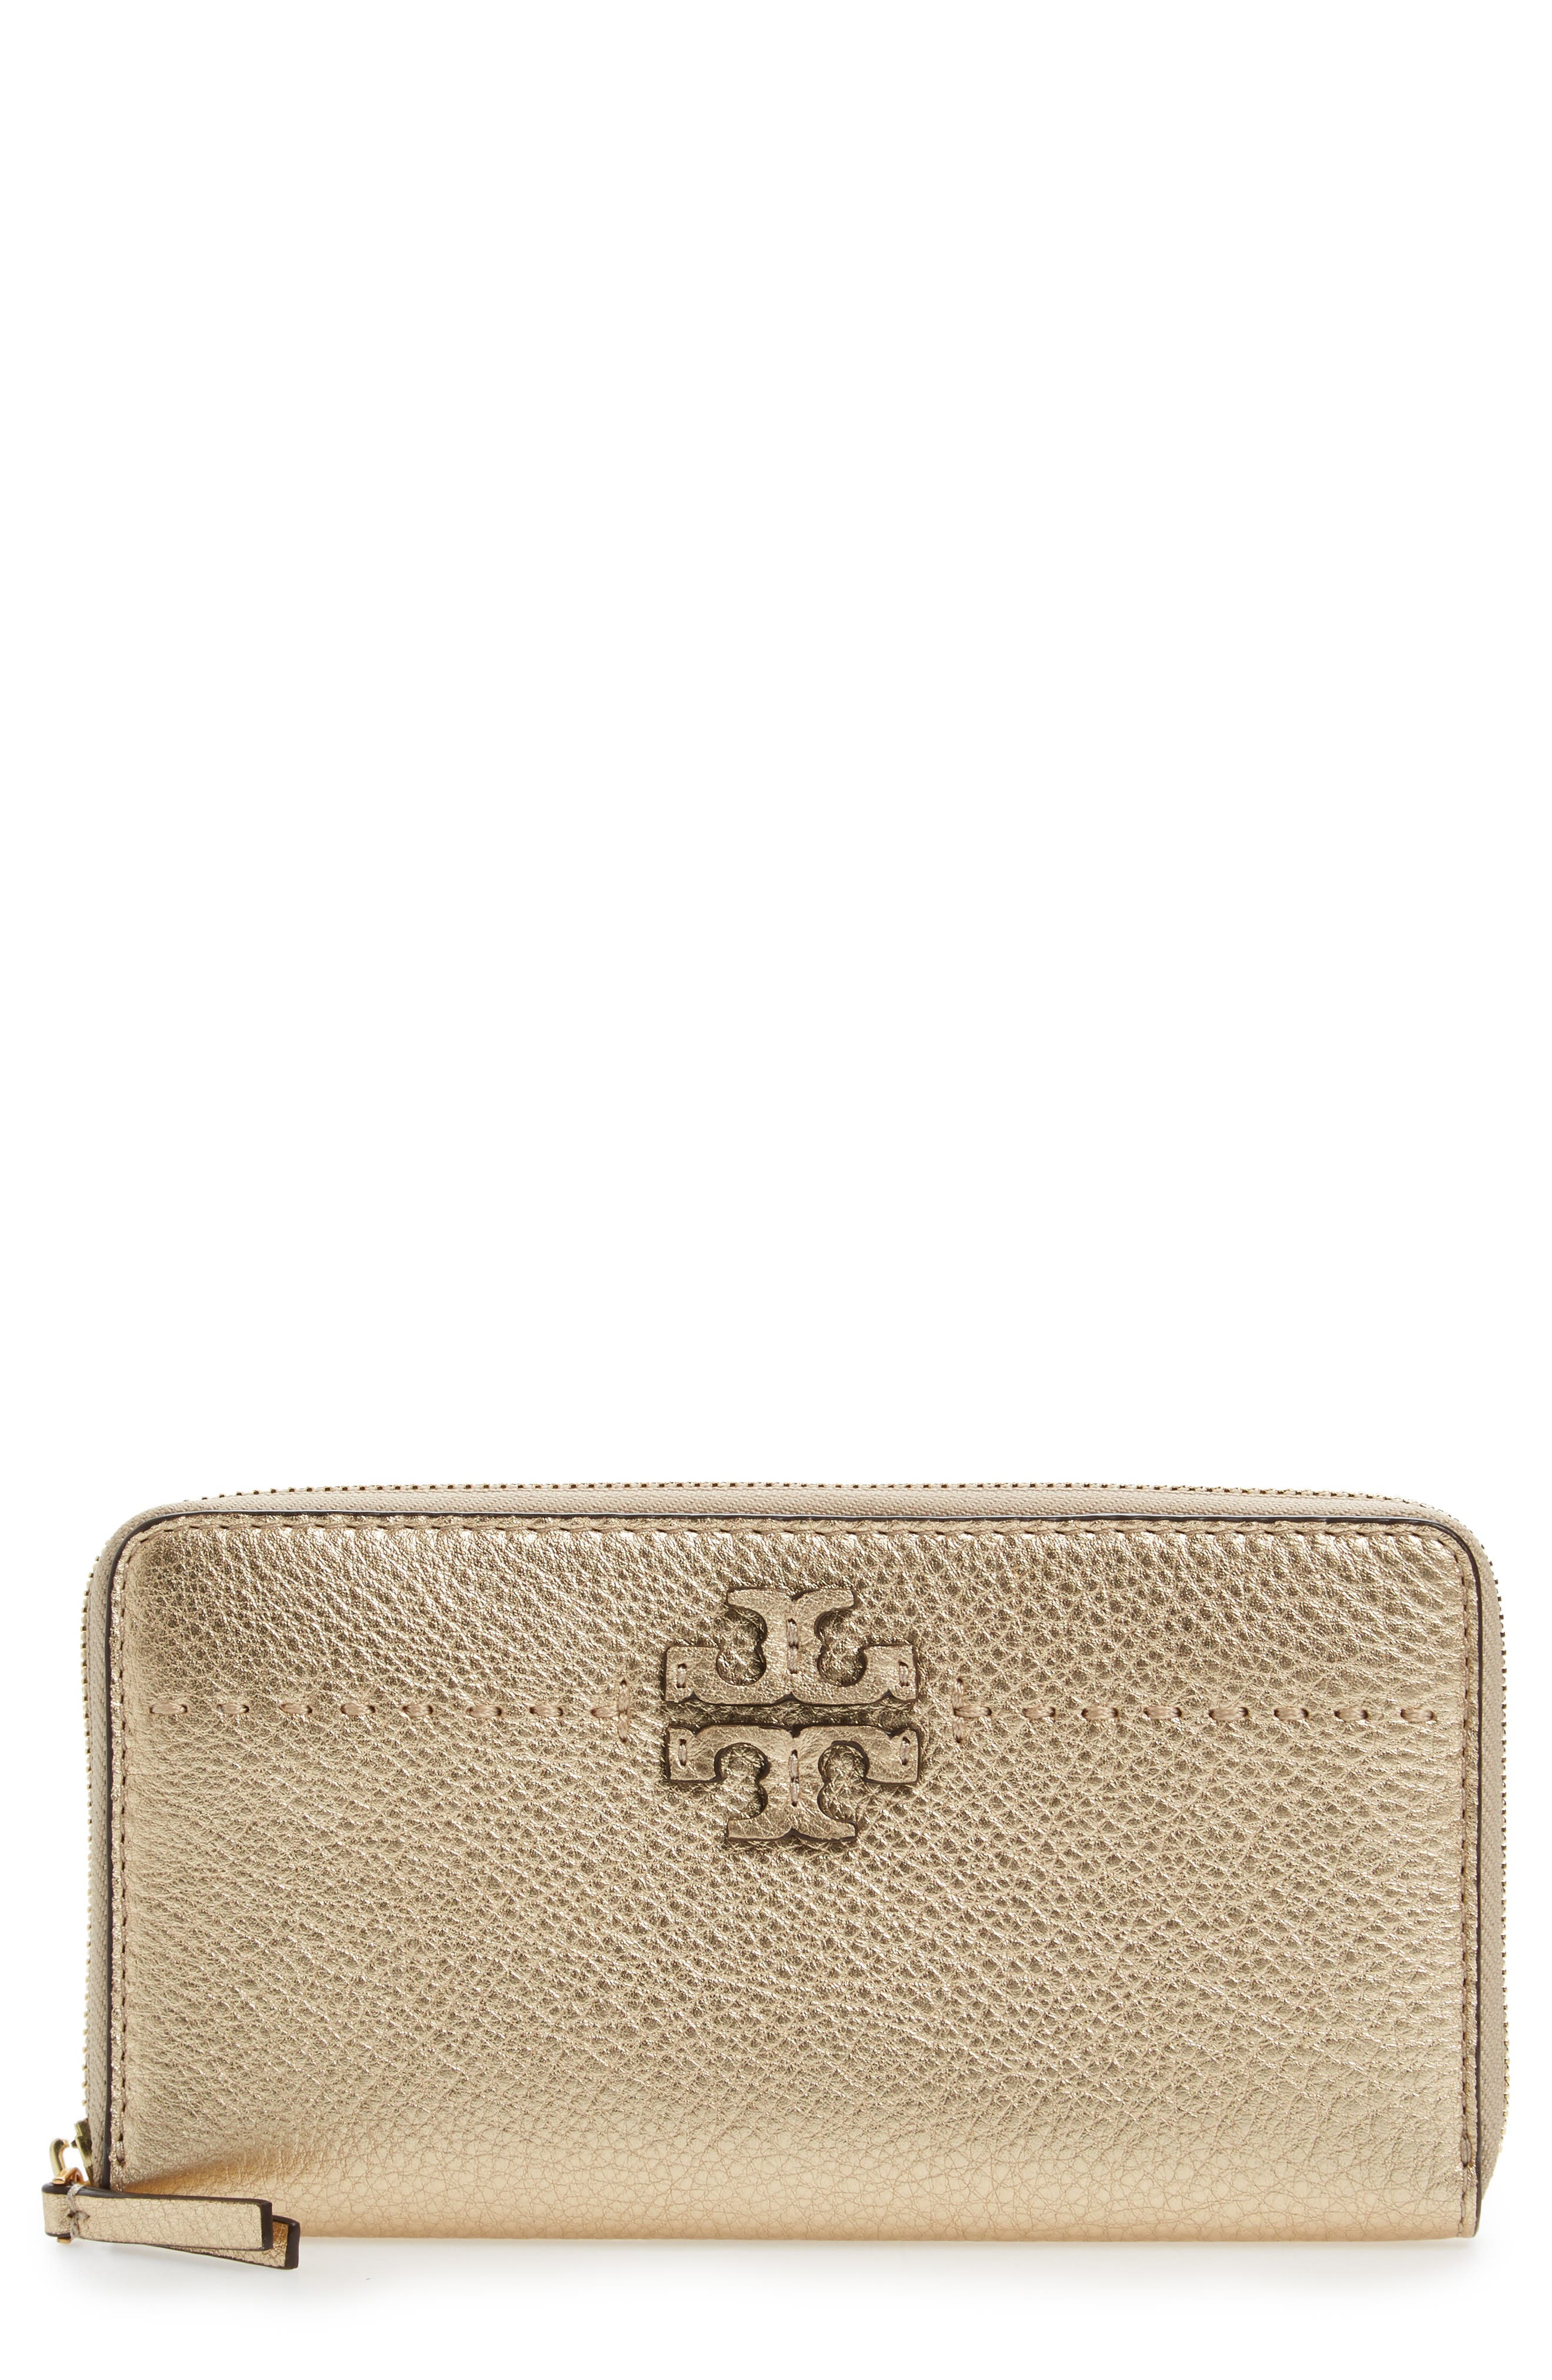 McGraw Leather Continental Wallet,                         Main,                         color, Gold